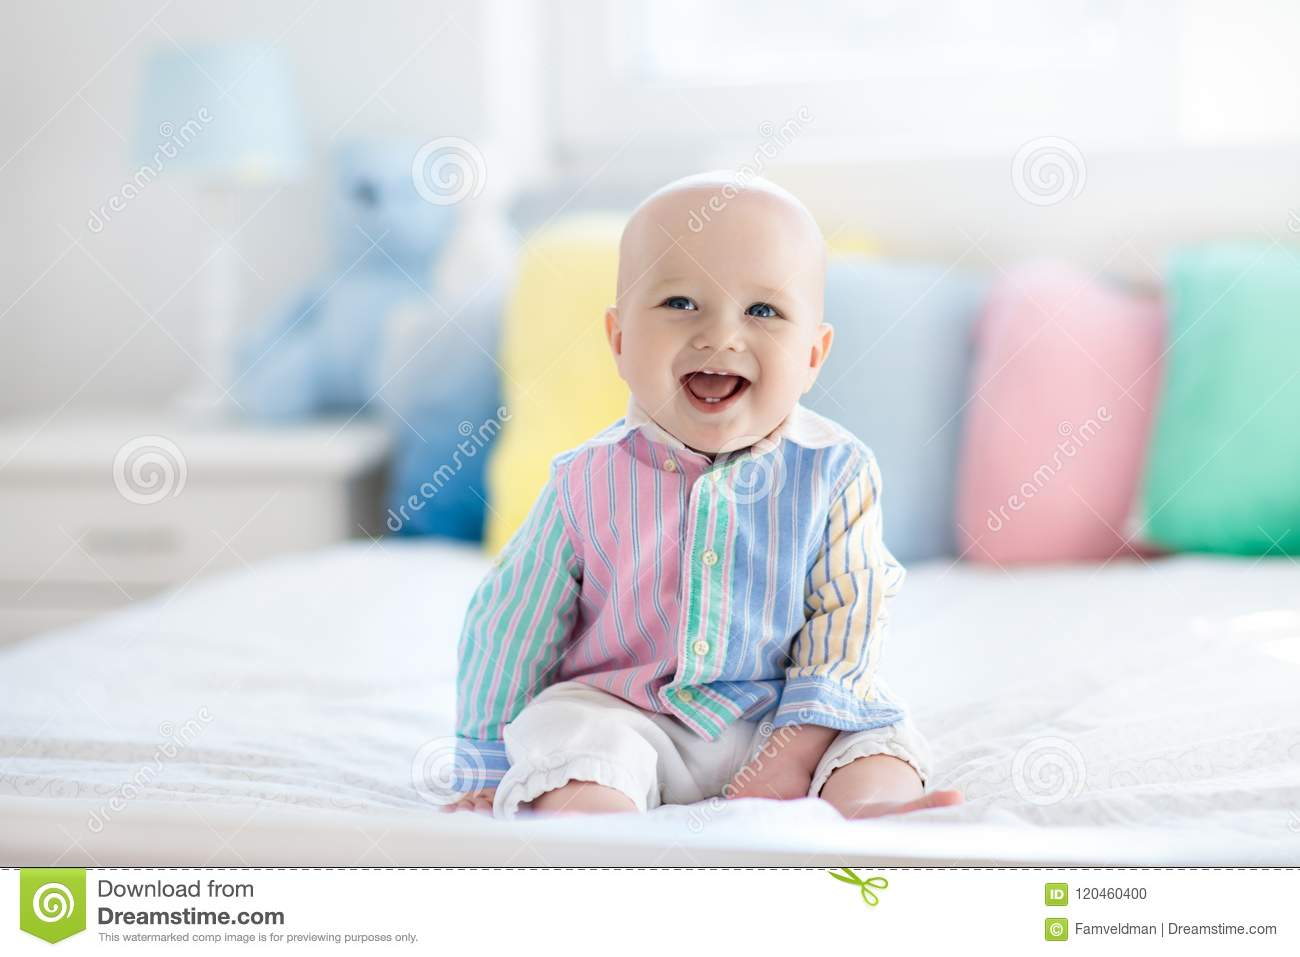 Download Cute baby on white bed stock photo. Image of home, indoors - 120460400